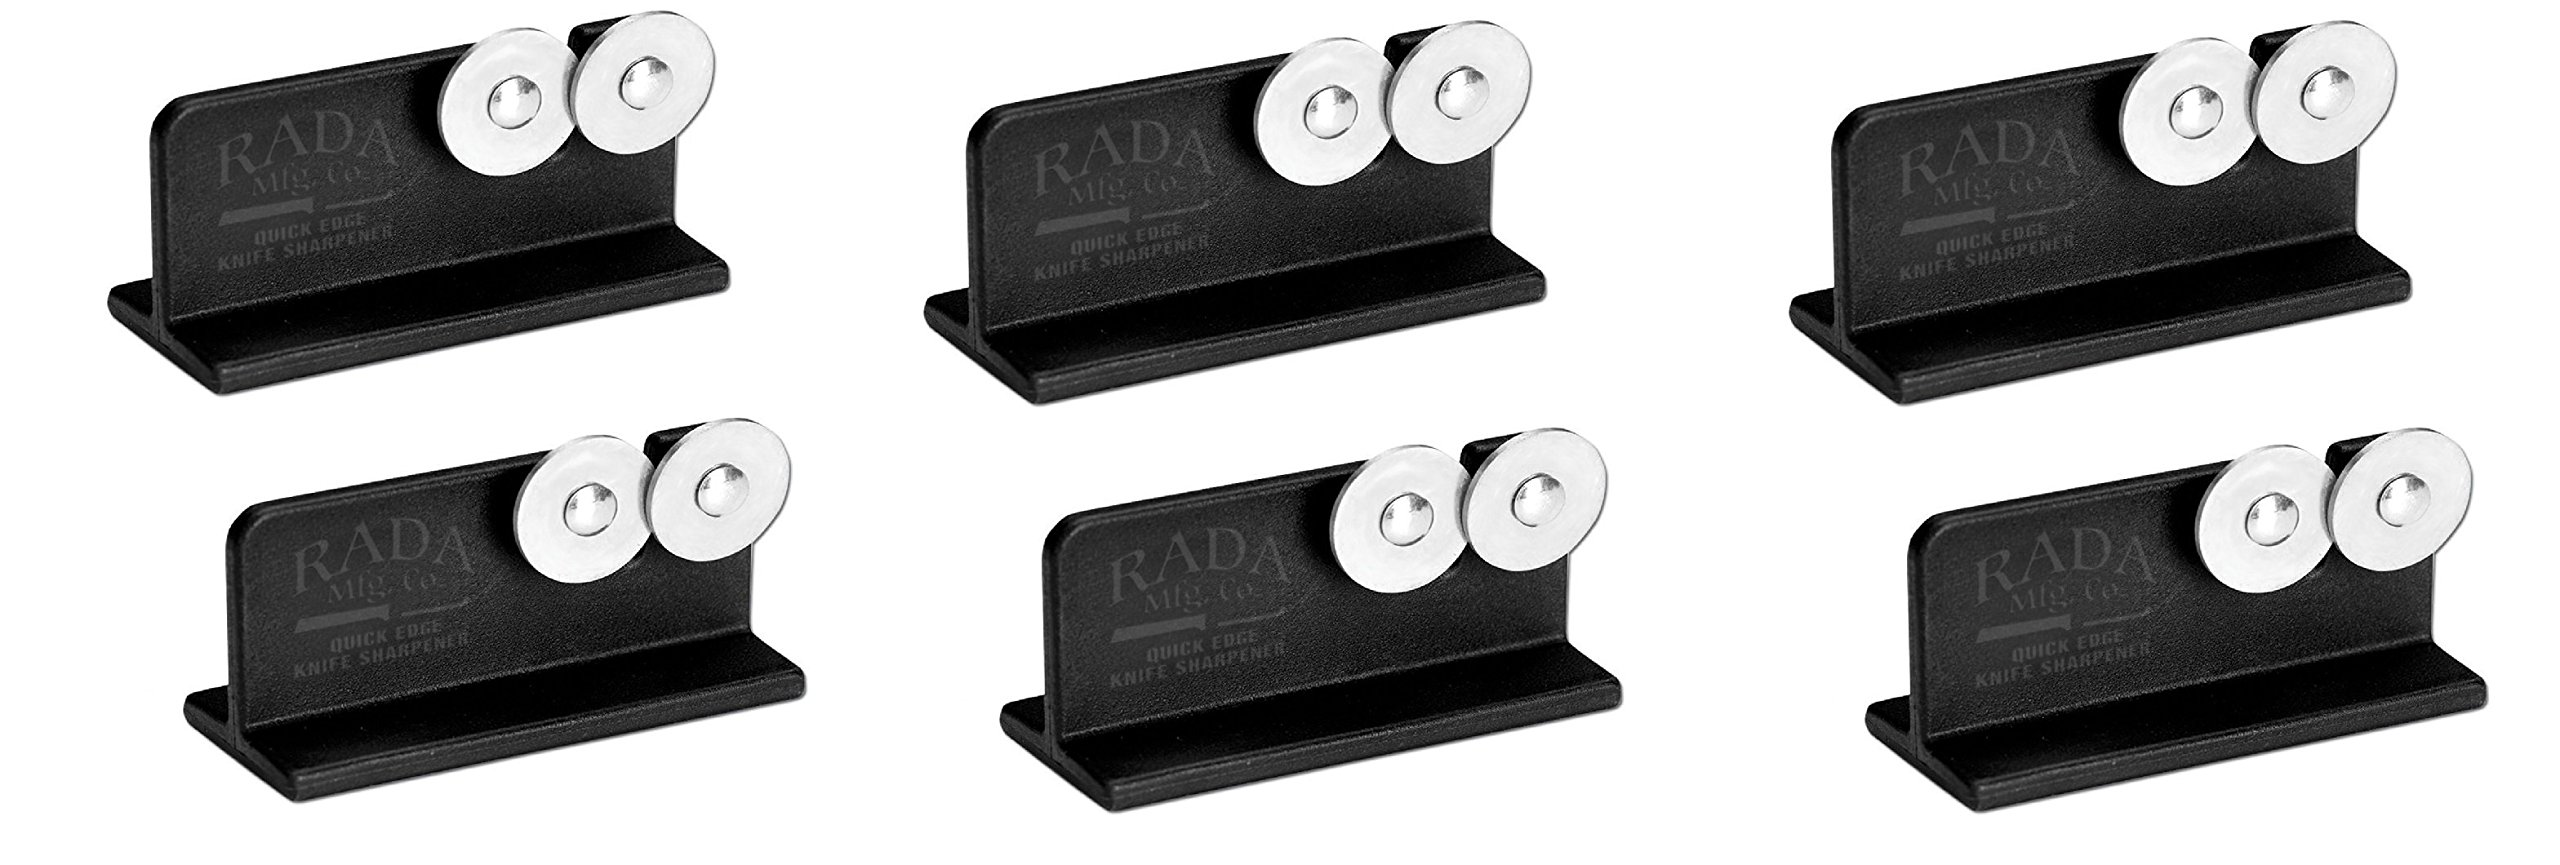 Rada Cutlery Quick Edge Knife Sharpener with Hardened Steel Wheels (Pack of 6 - R119/6)